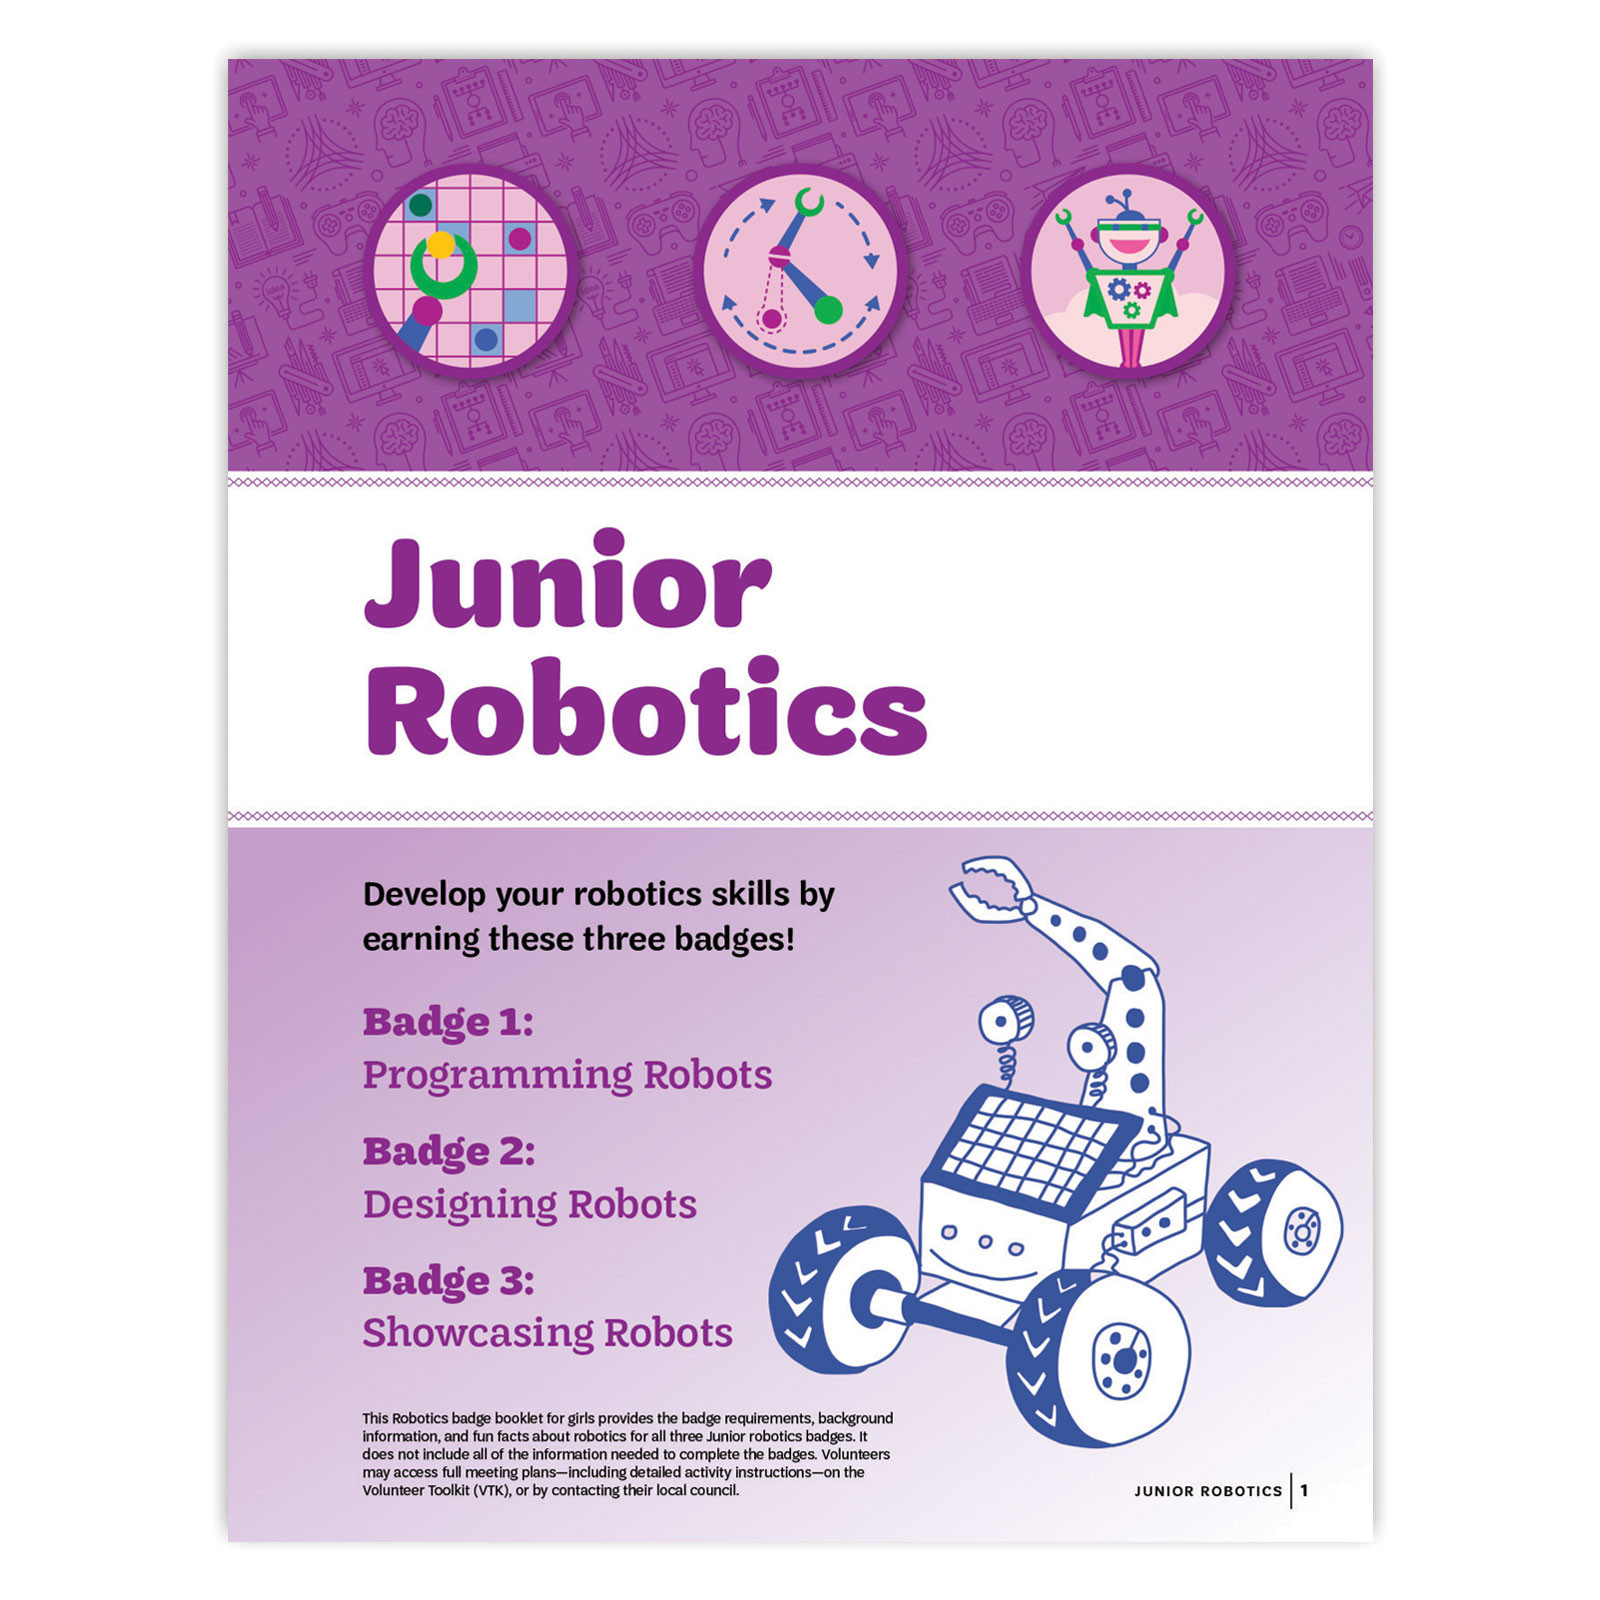 Junior Robotics Image.jpg